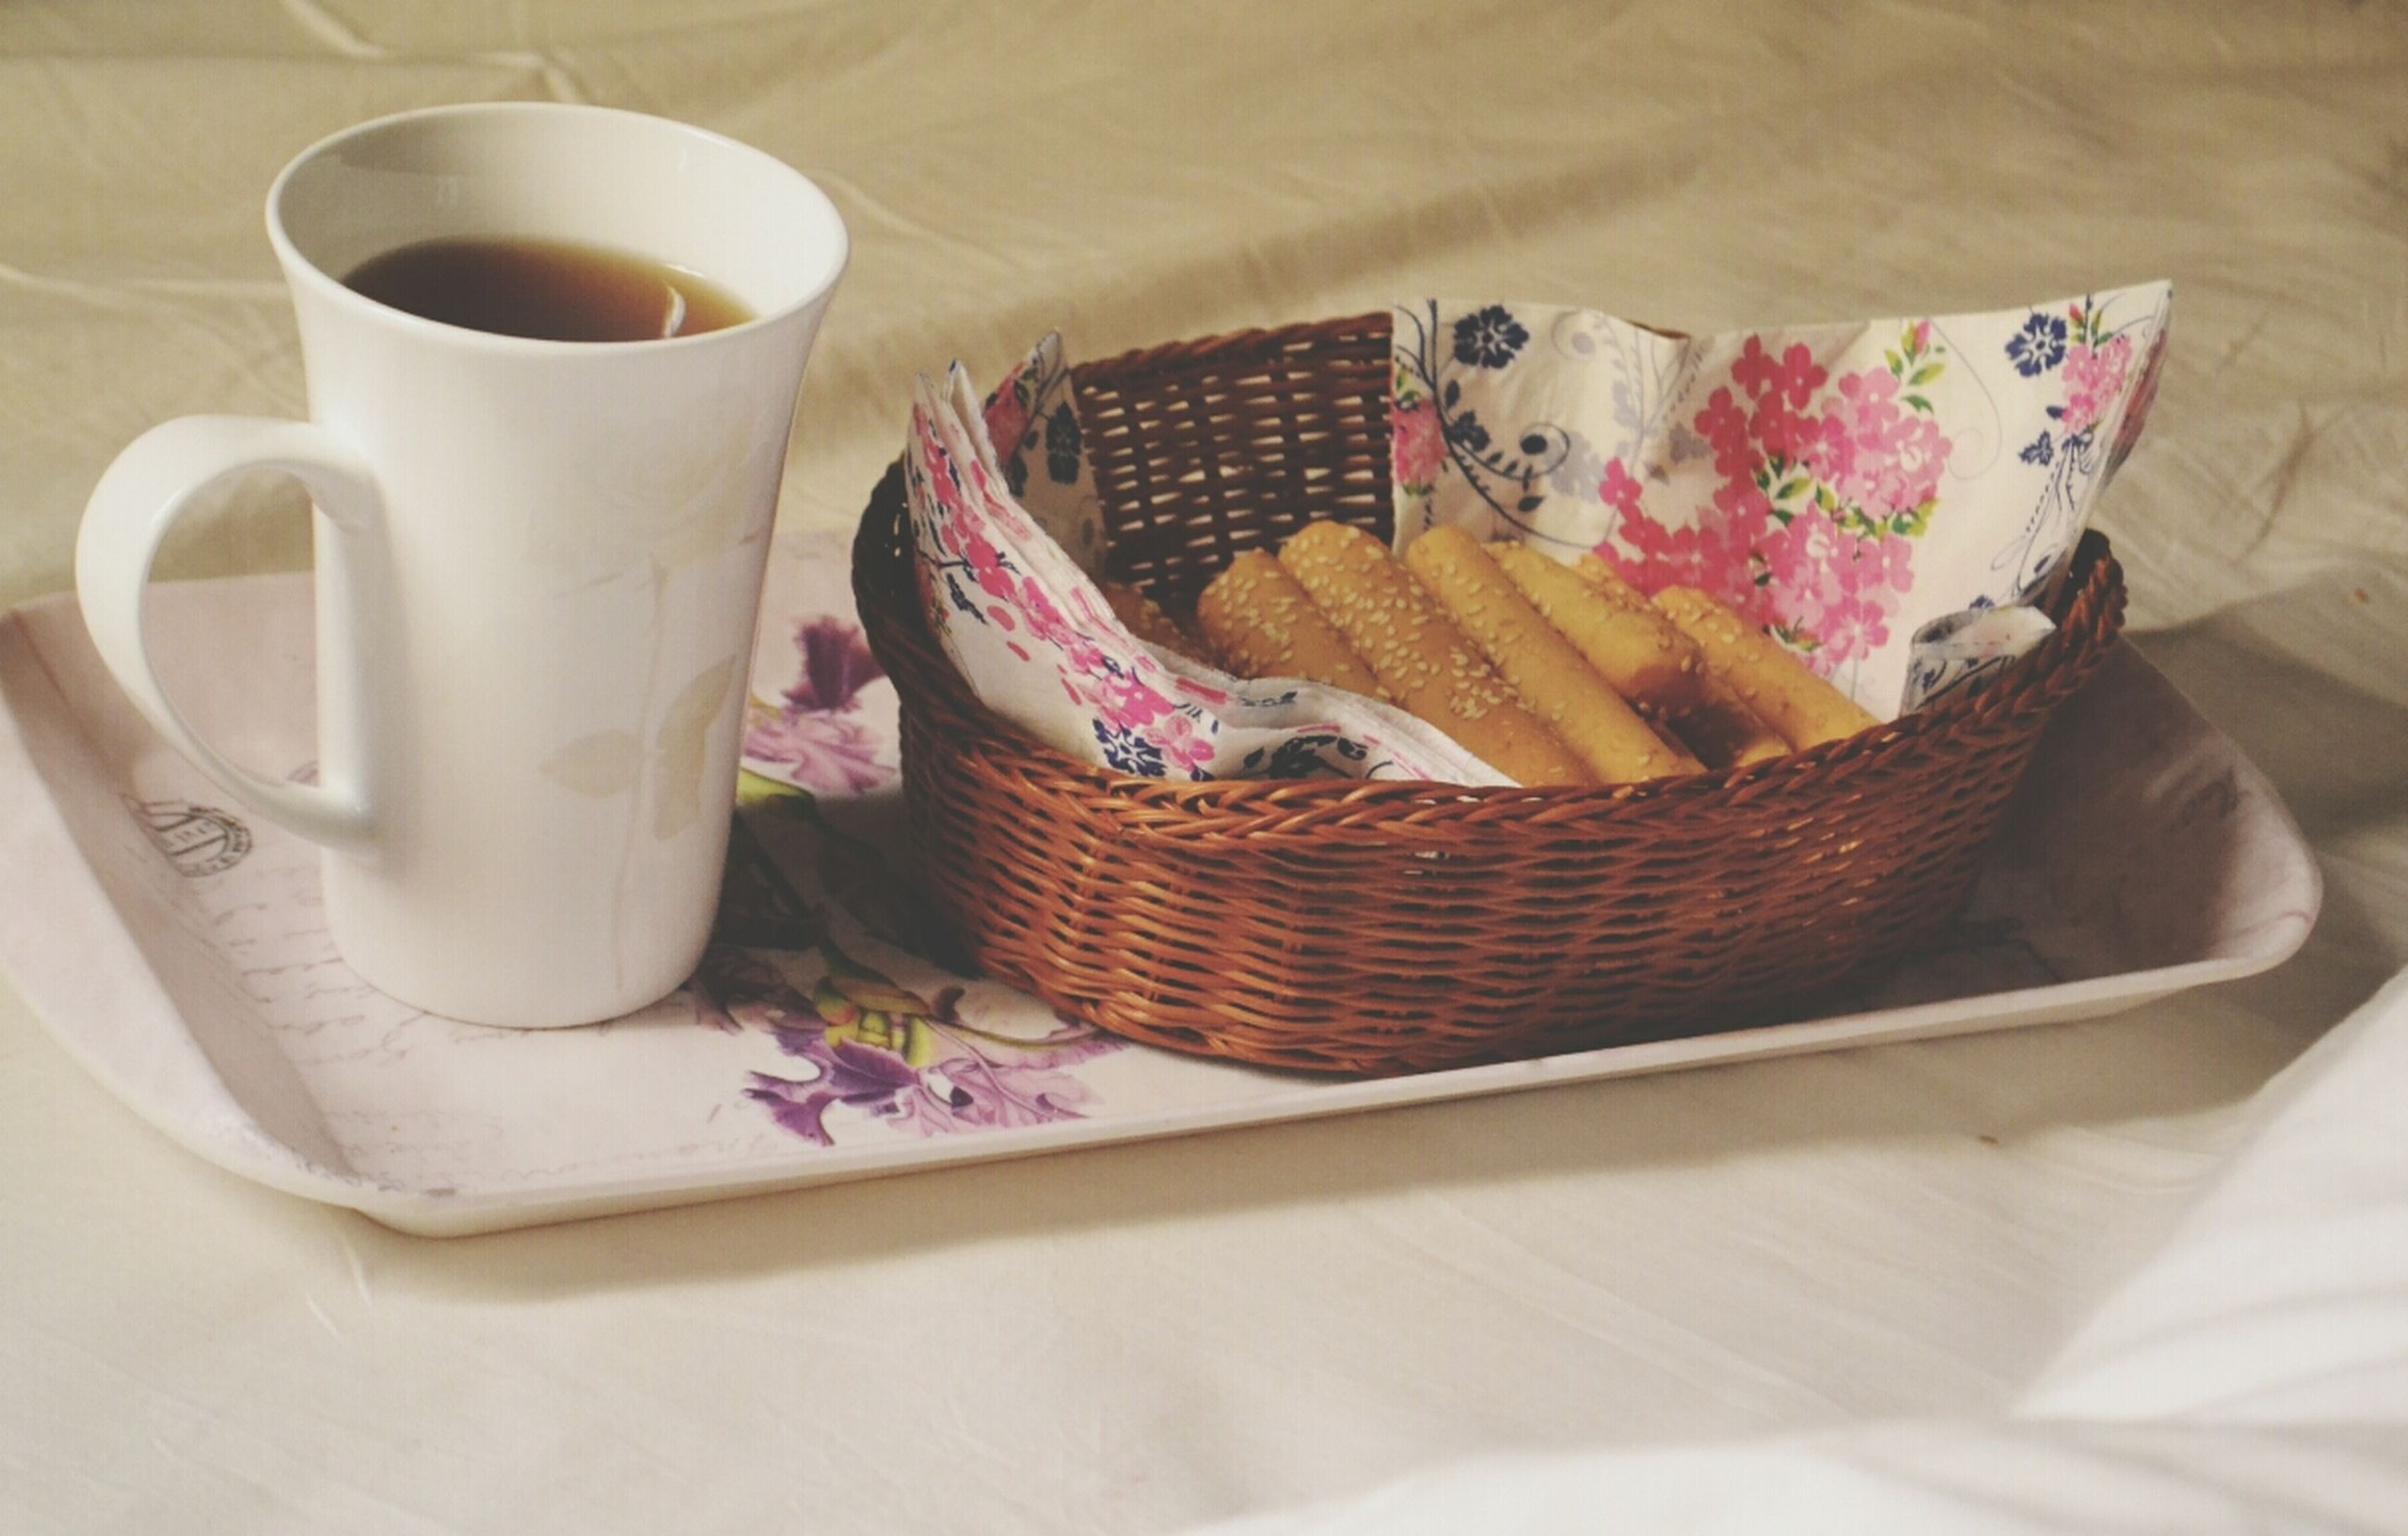 indoors, table, still life, high angle view, coffee cup, food and drink, plate, cup, tablecloth, no people, bed, home interior, sweet food, freshness, close-up, paper, coffee - drink, creativity, book, white color